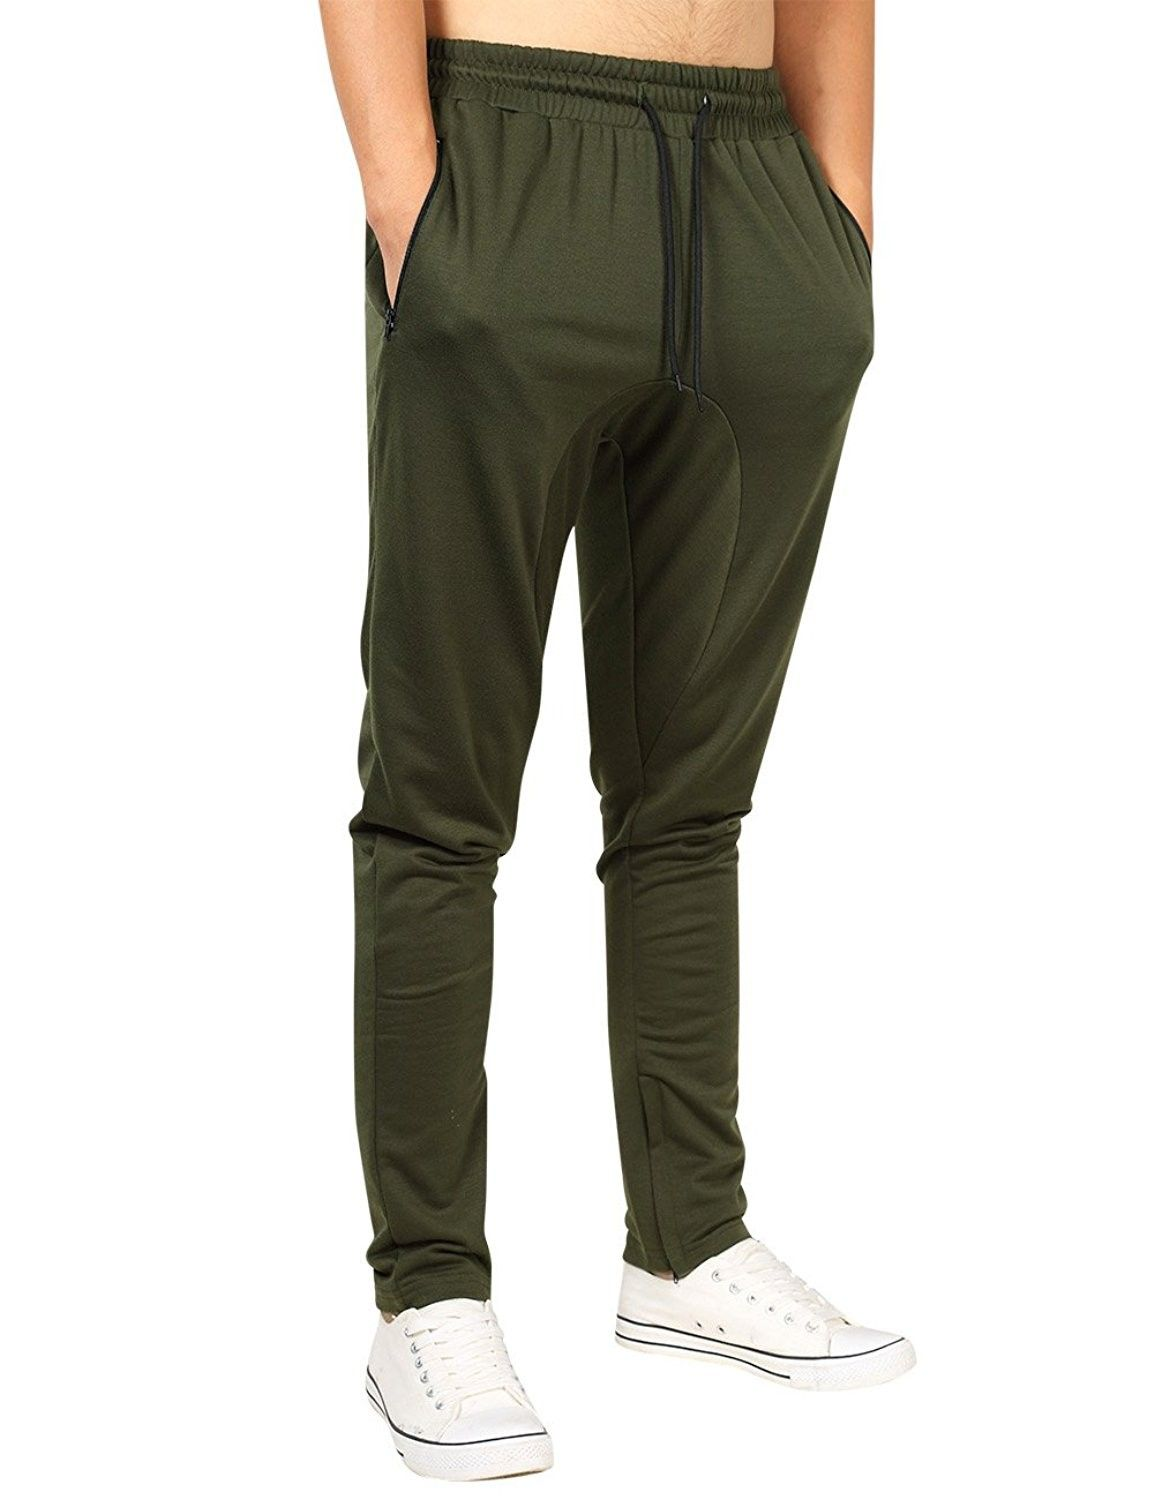 mens activewear pants with pockets zipper